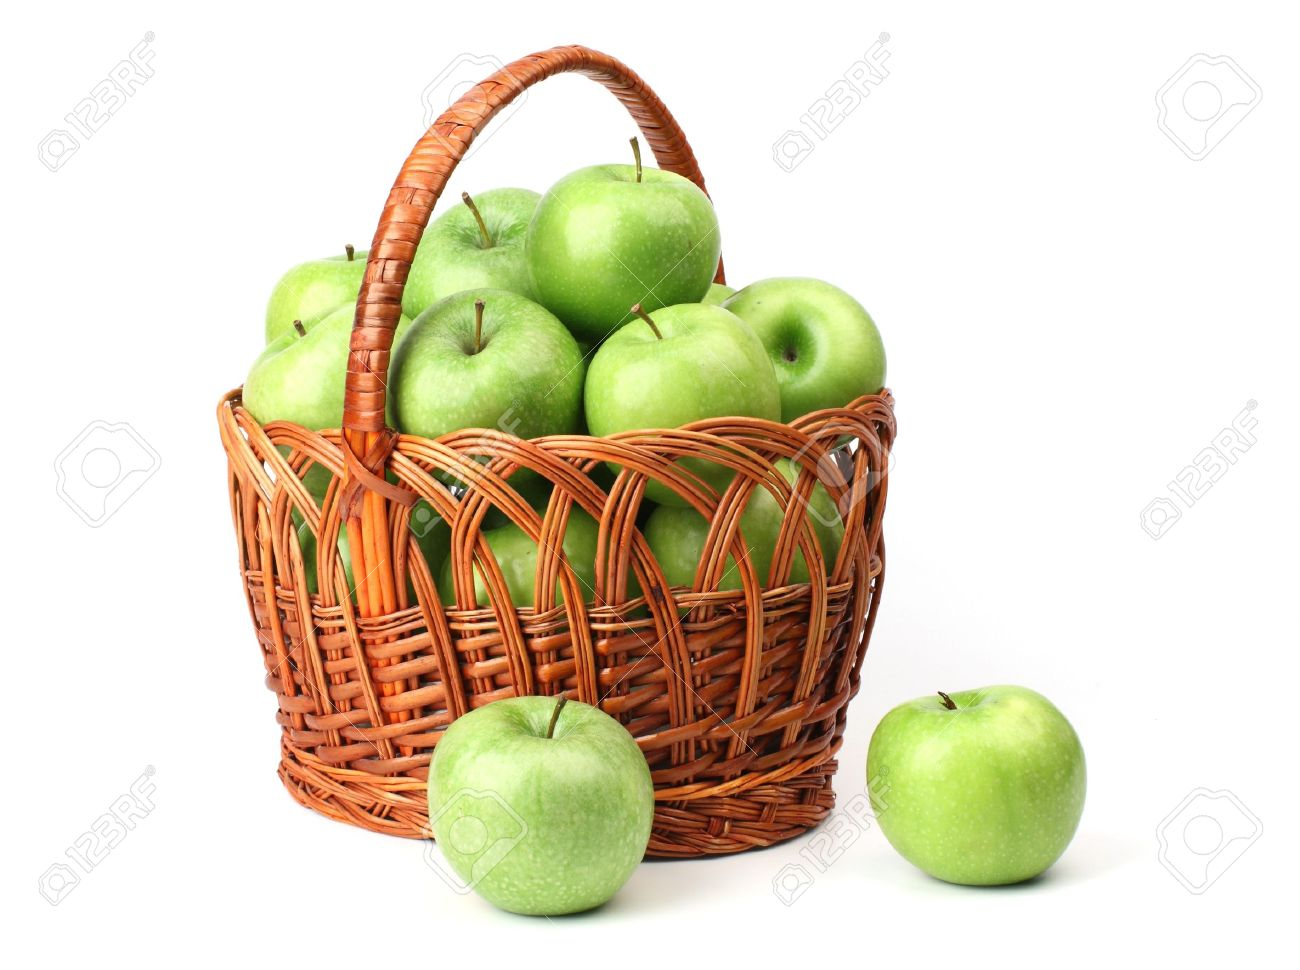 Apple Fruit Basket Images